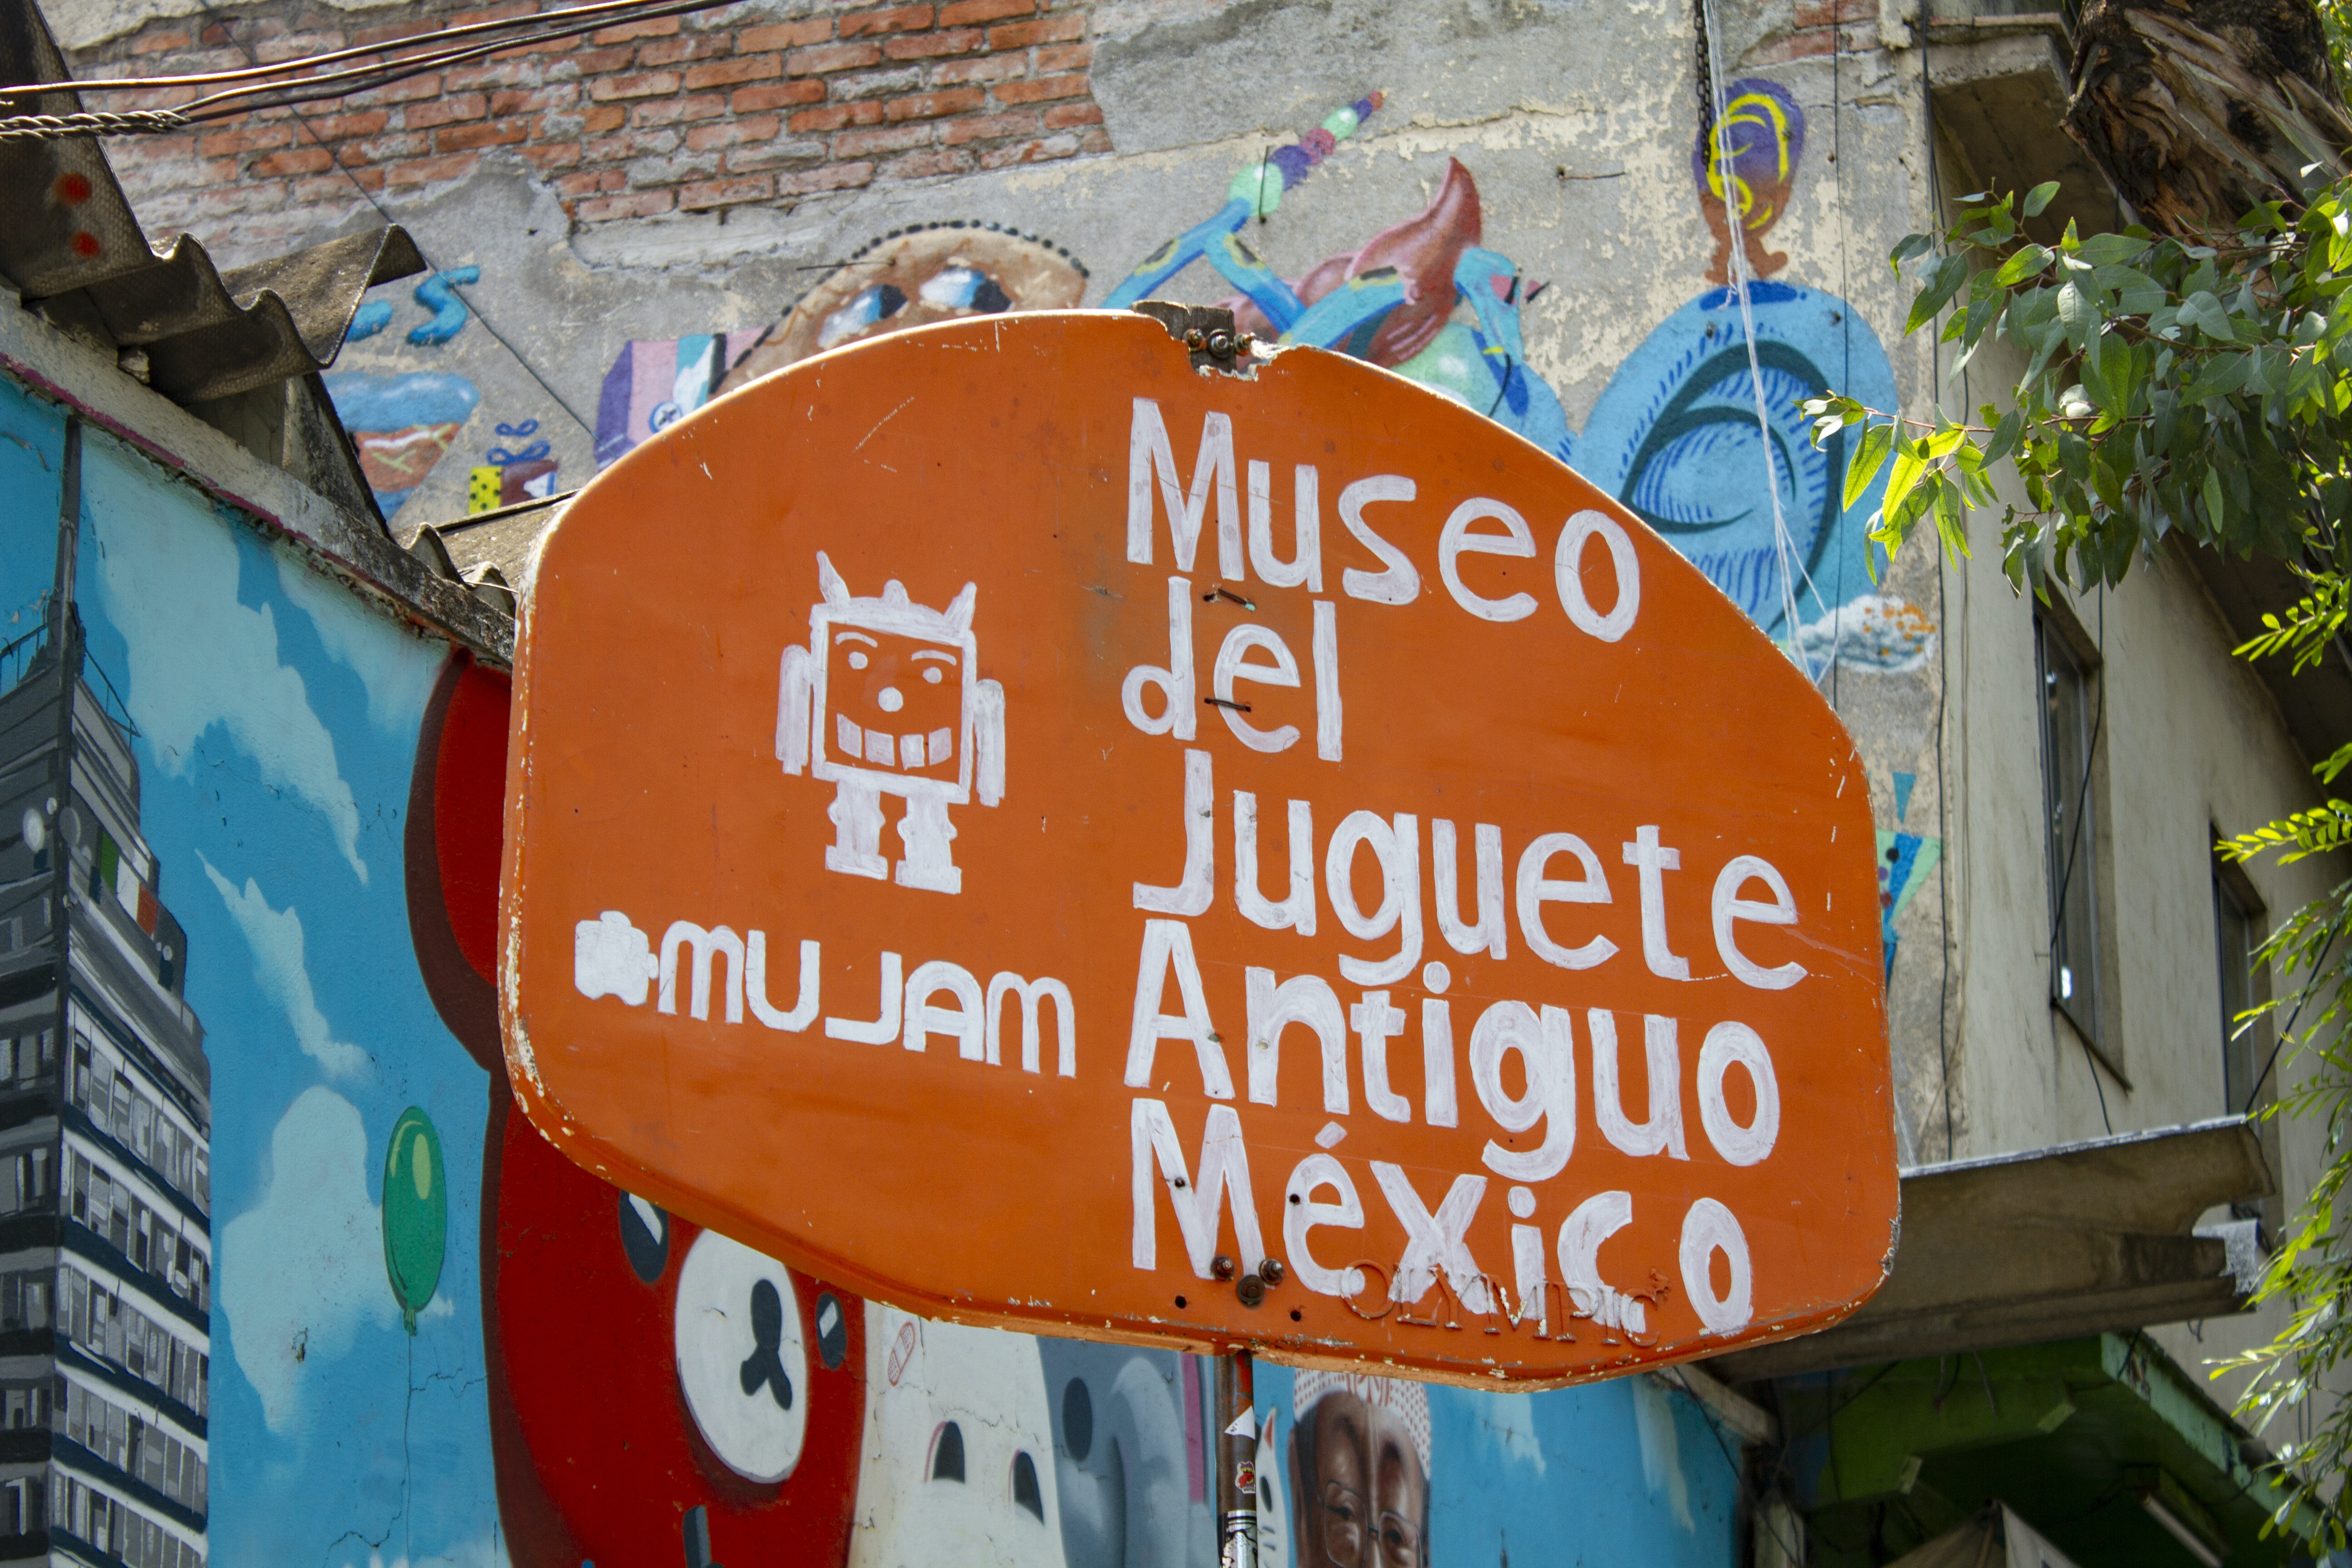 orange and white Museo del Juguete Antiguo Mexico signage